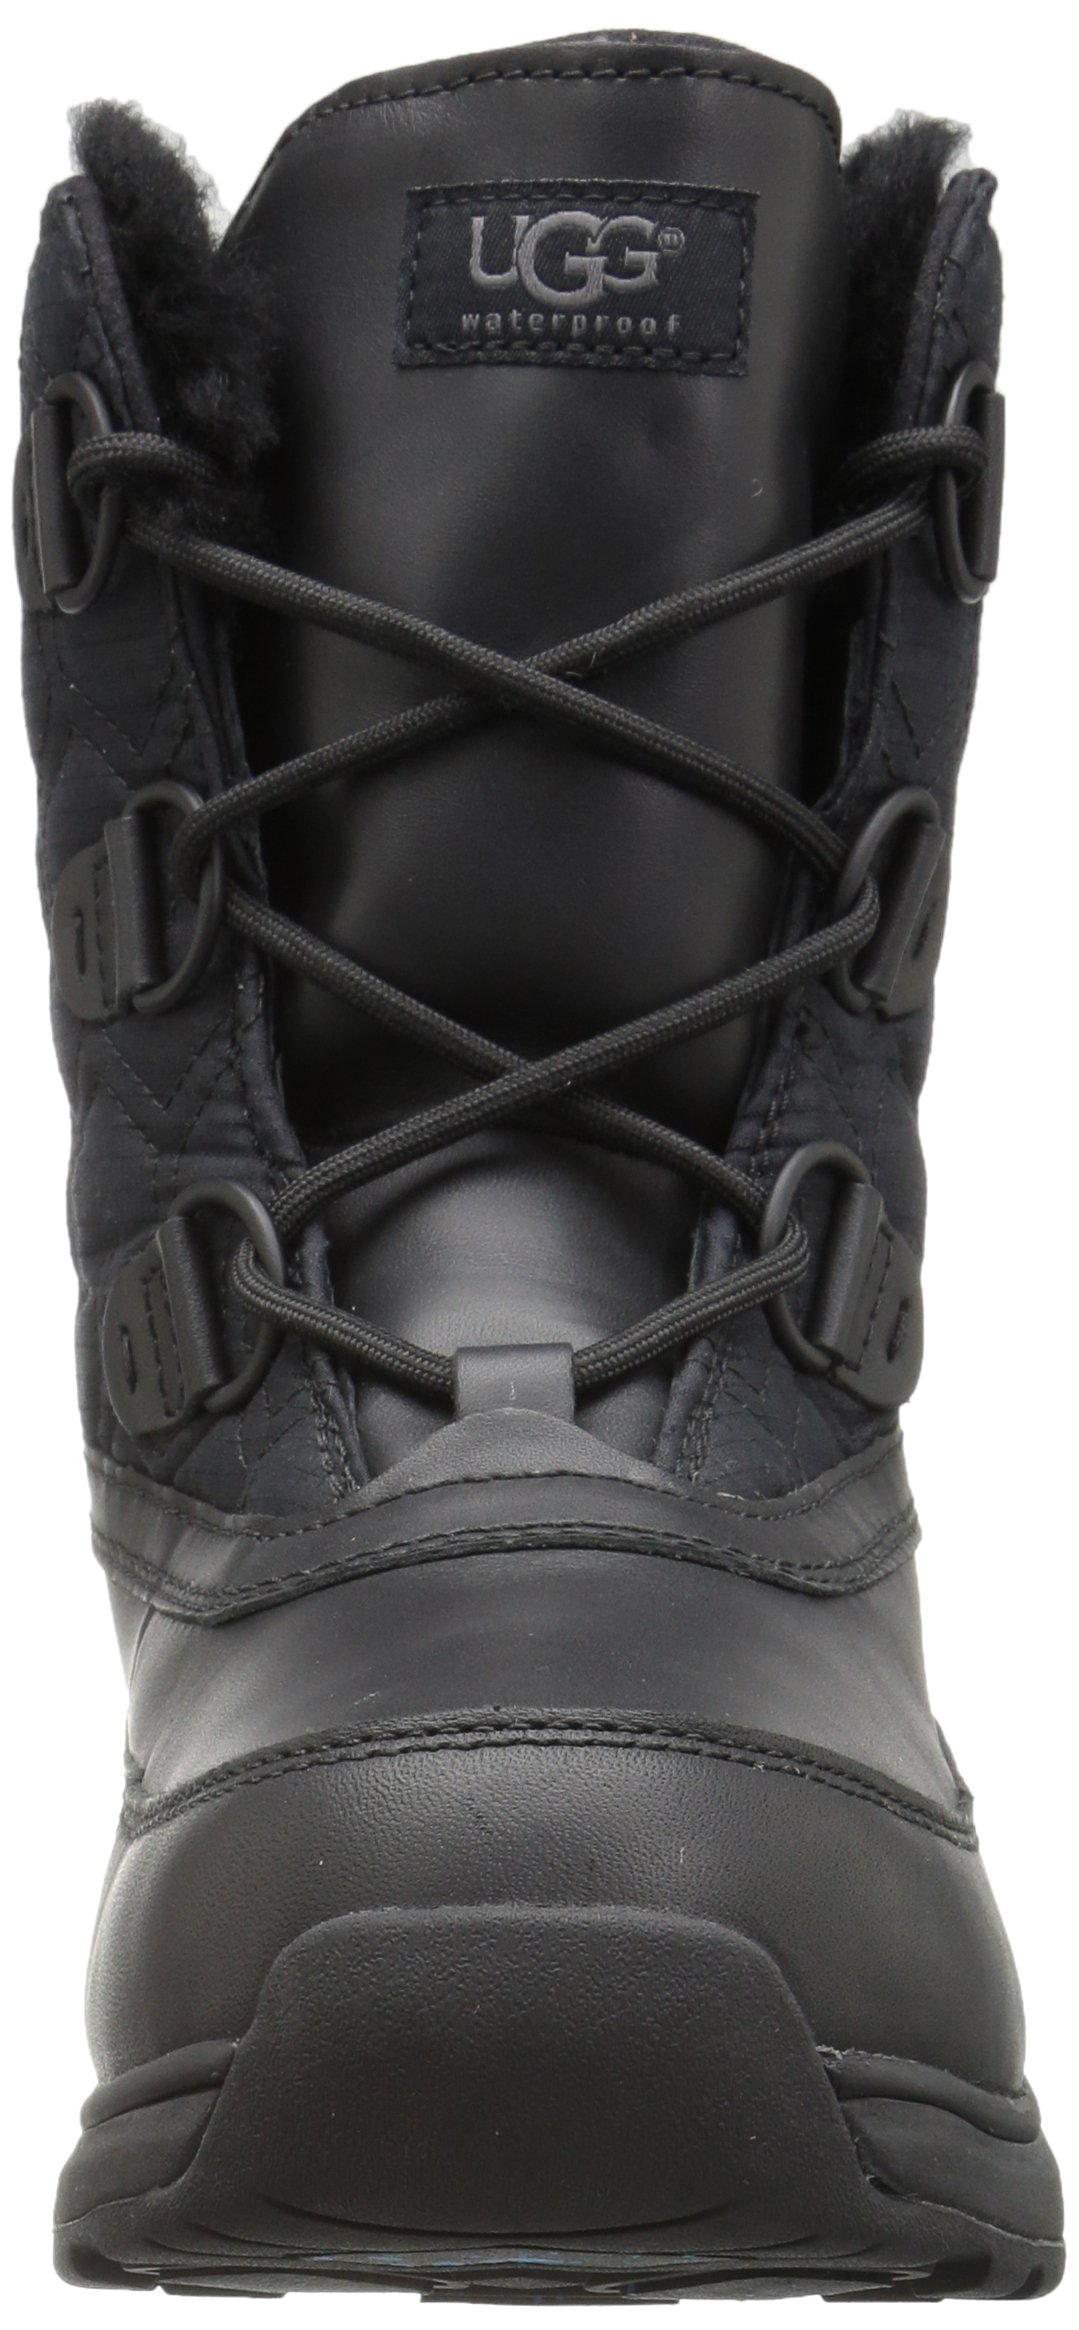 UGG Women's Lachlan Winter Boot, Black, 8 M US by UGG (Image #4)